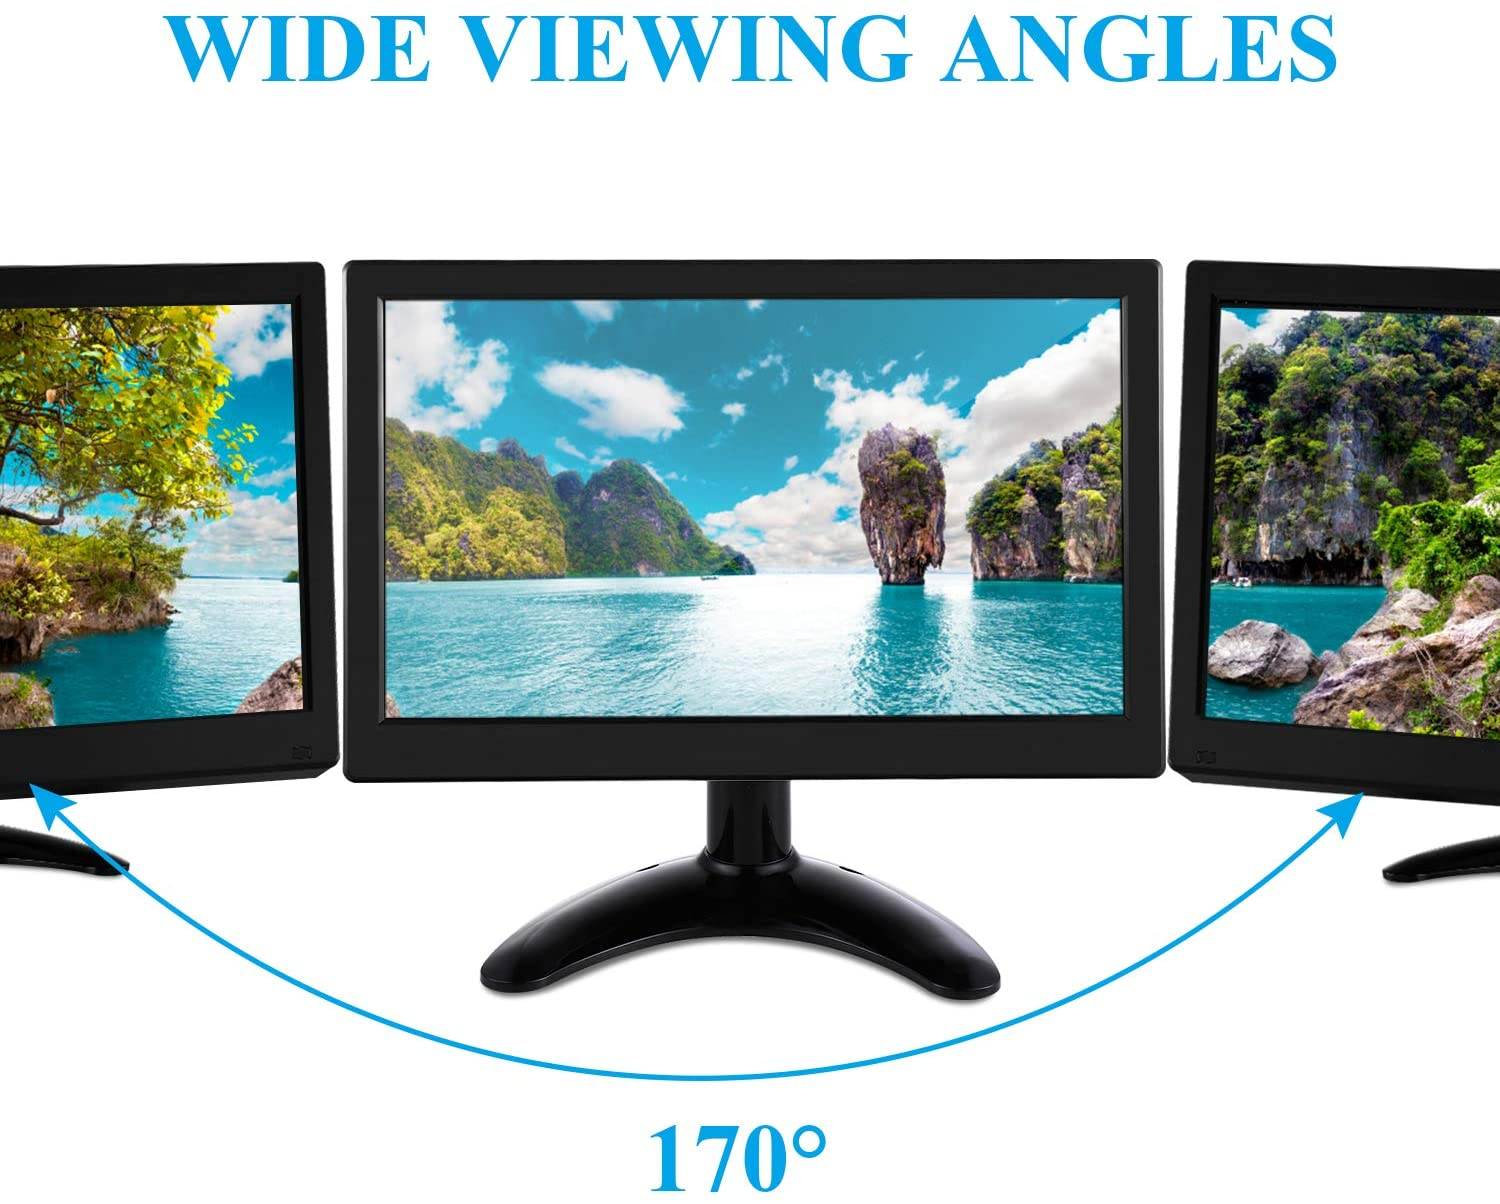 11.6 Inches 1920x1080 Full HD RGB TFT LCD IPS Wide Viewing Angle Display Screen Video Monitor MP5 Player CCTV Monitor Security Monitor with Speaker & Remote & AV / VGA / HDMI / BNC / USB Input